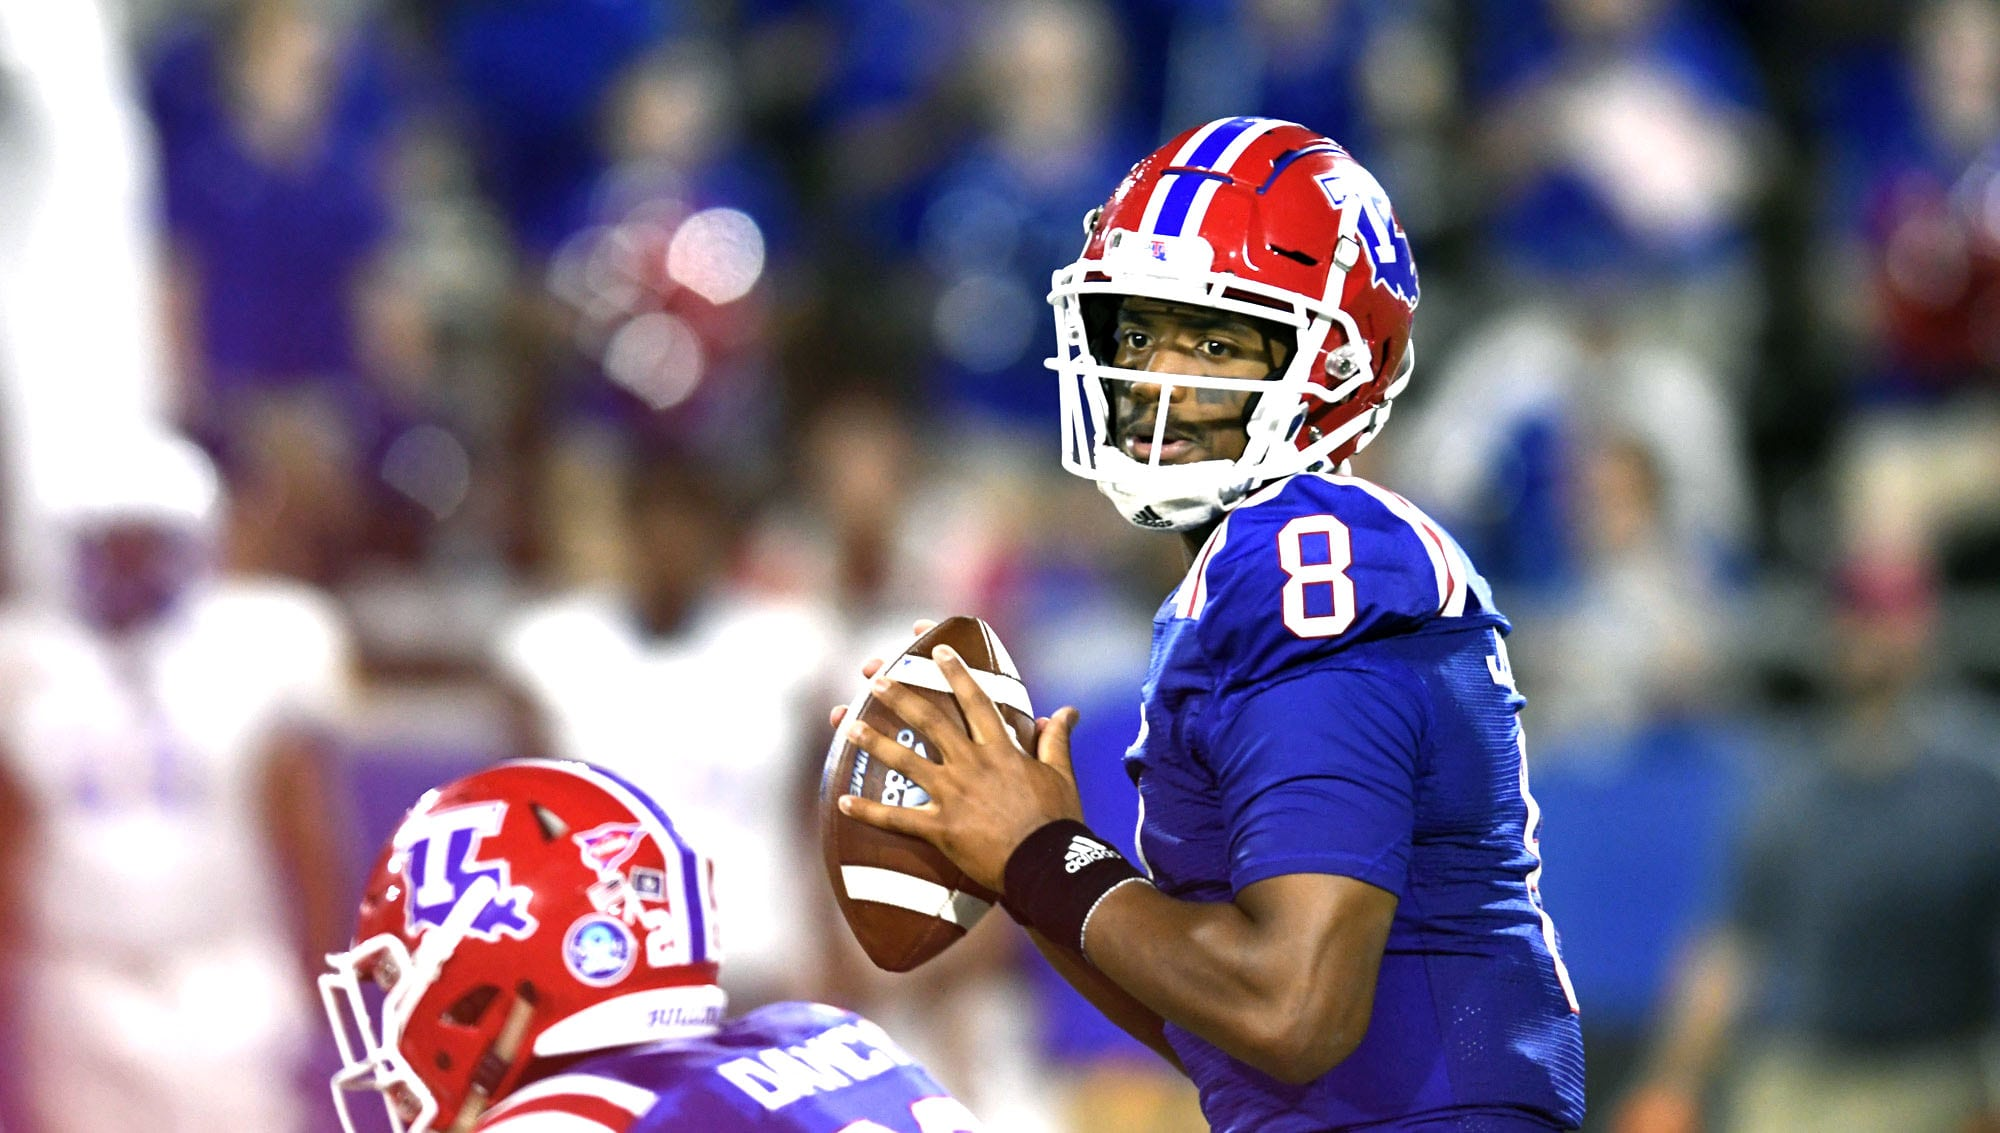 quality design d682c e3ef4 College football: Louisiana Tech routs Southern, improves to ...